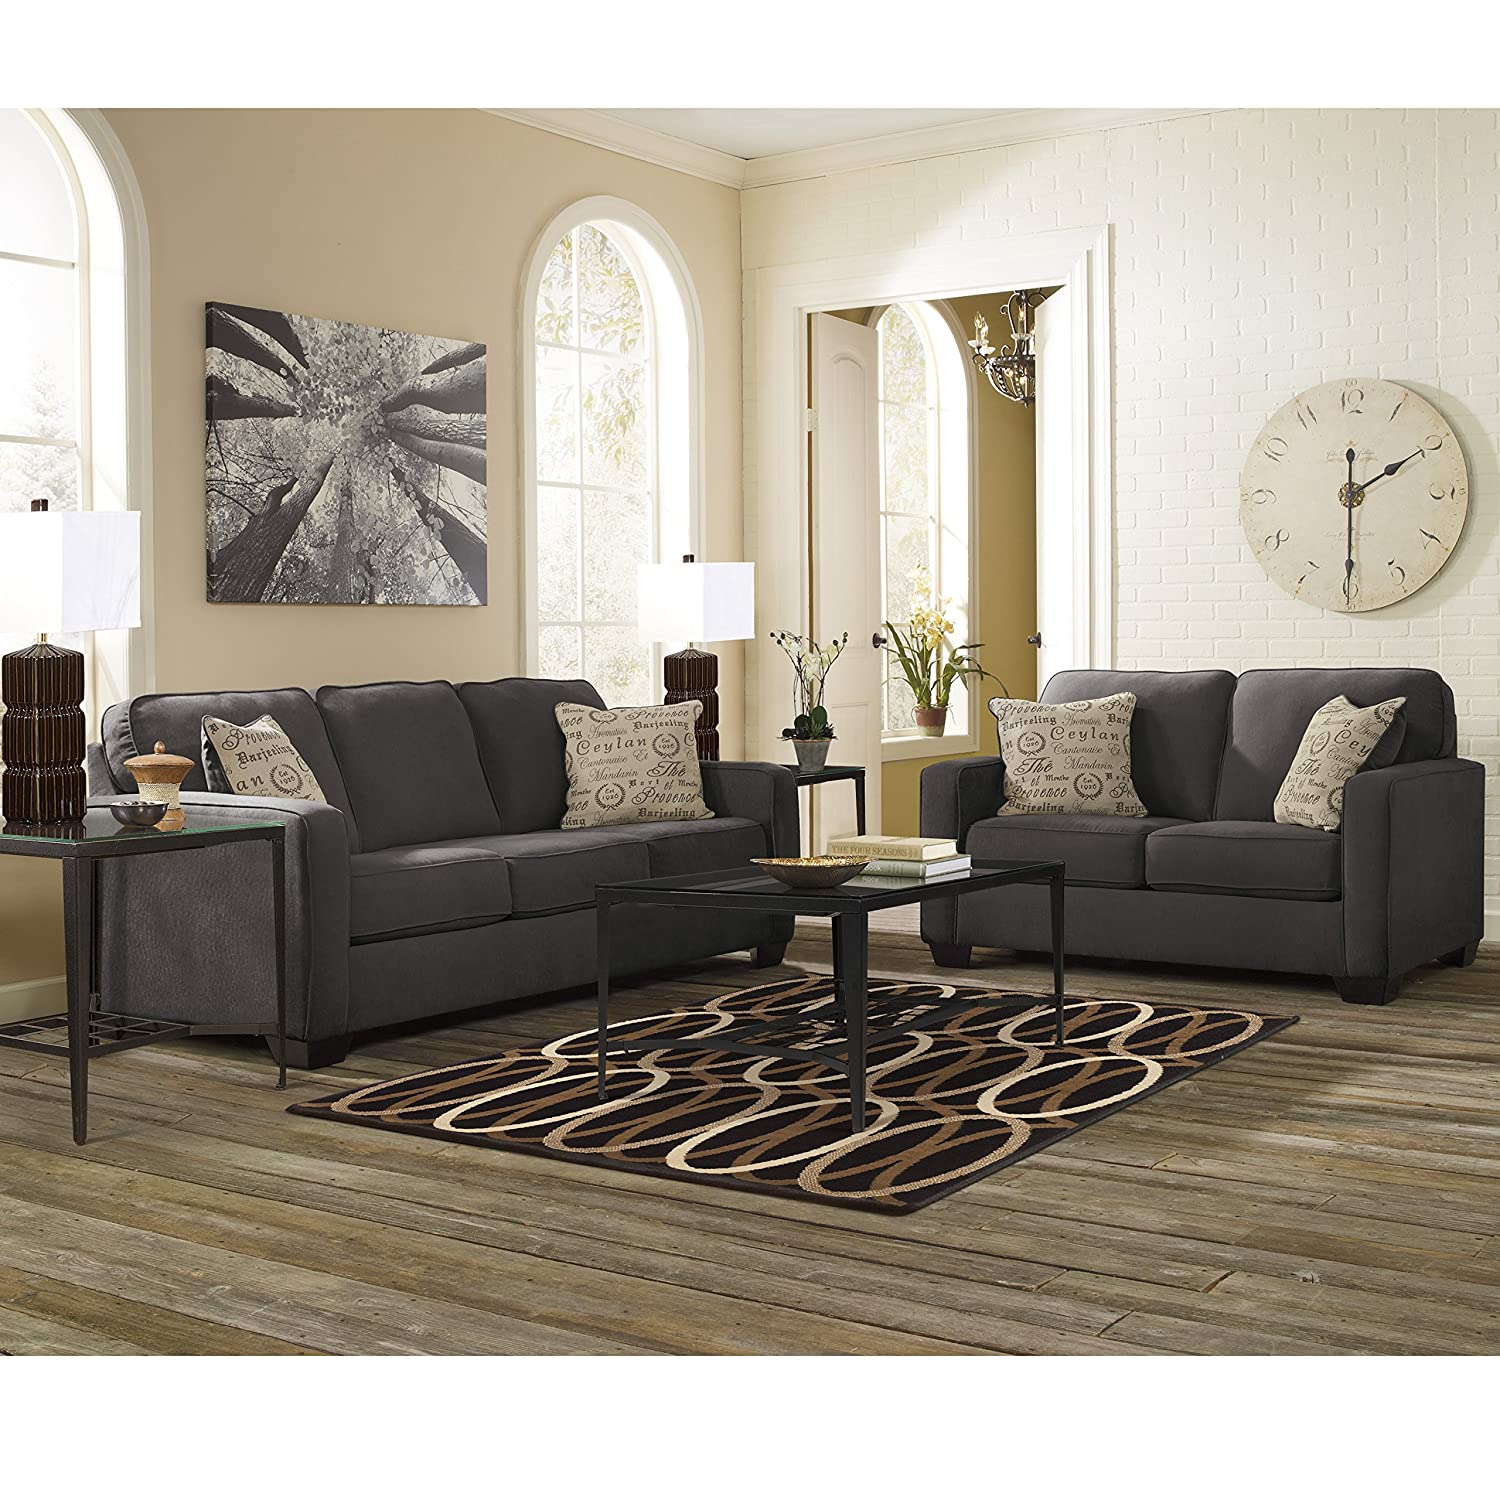 Amazon com flash furniture signature design by ashley alenya living room set in charcoal microfiber kitchen dining